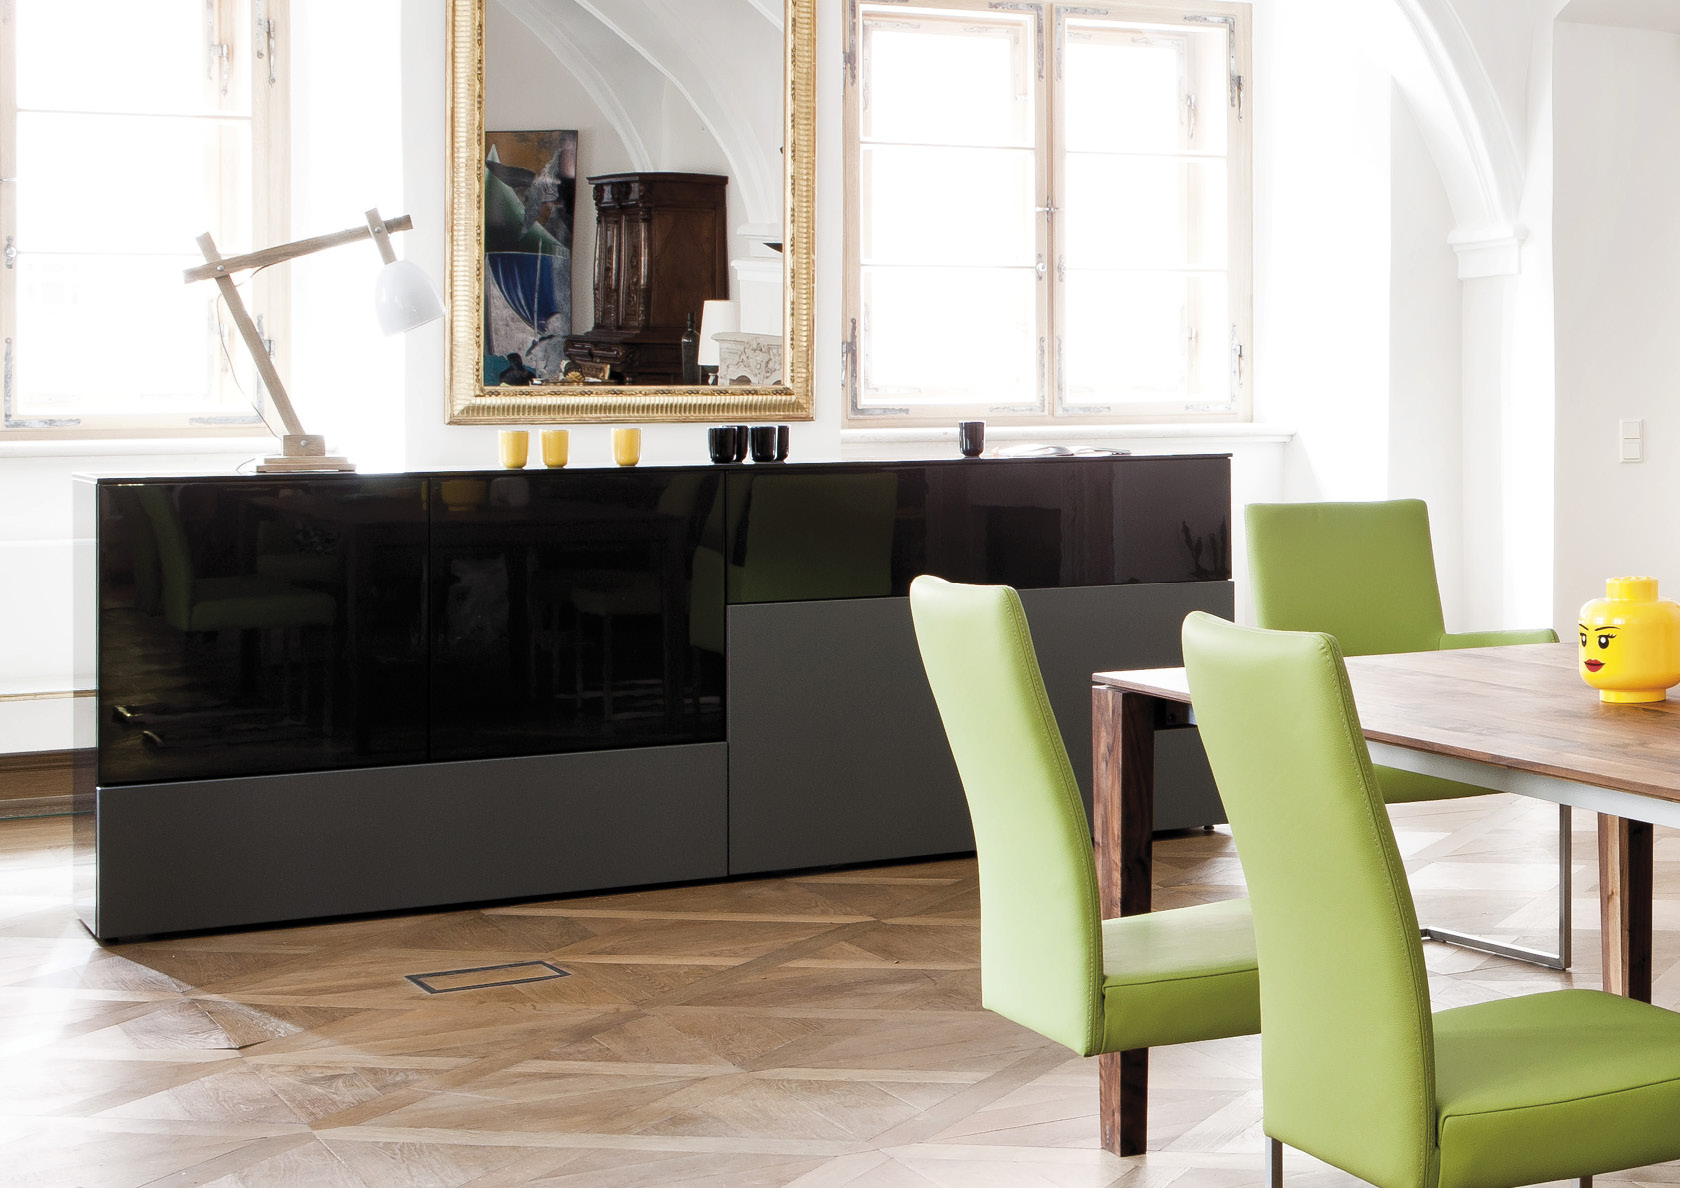 sideboard m bel k chen birkh lzer toni birkh lzer in erftstadt liblar. Black Bedroom Furniture Sets. Home Design Ideas